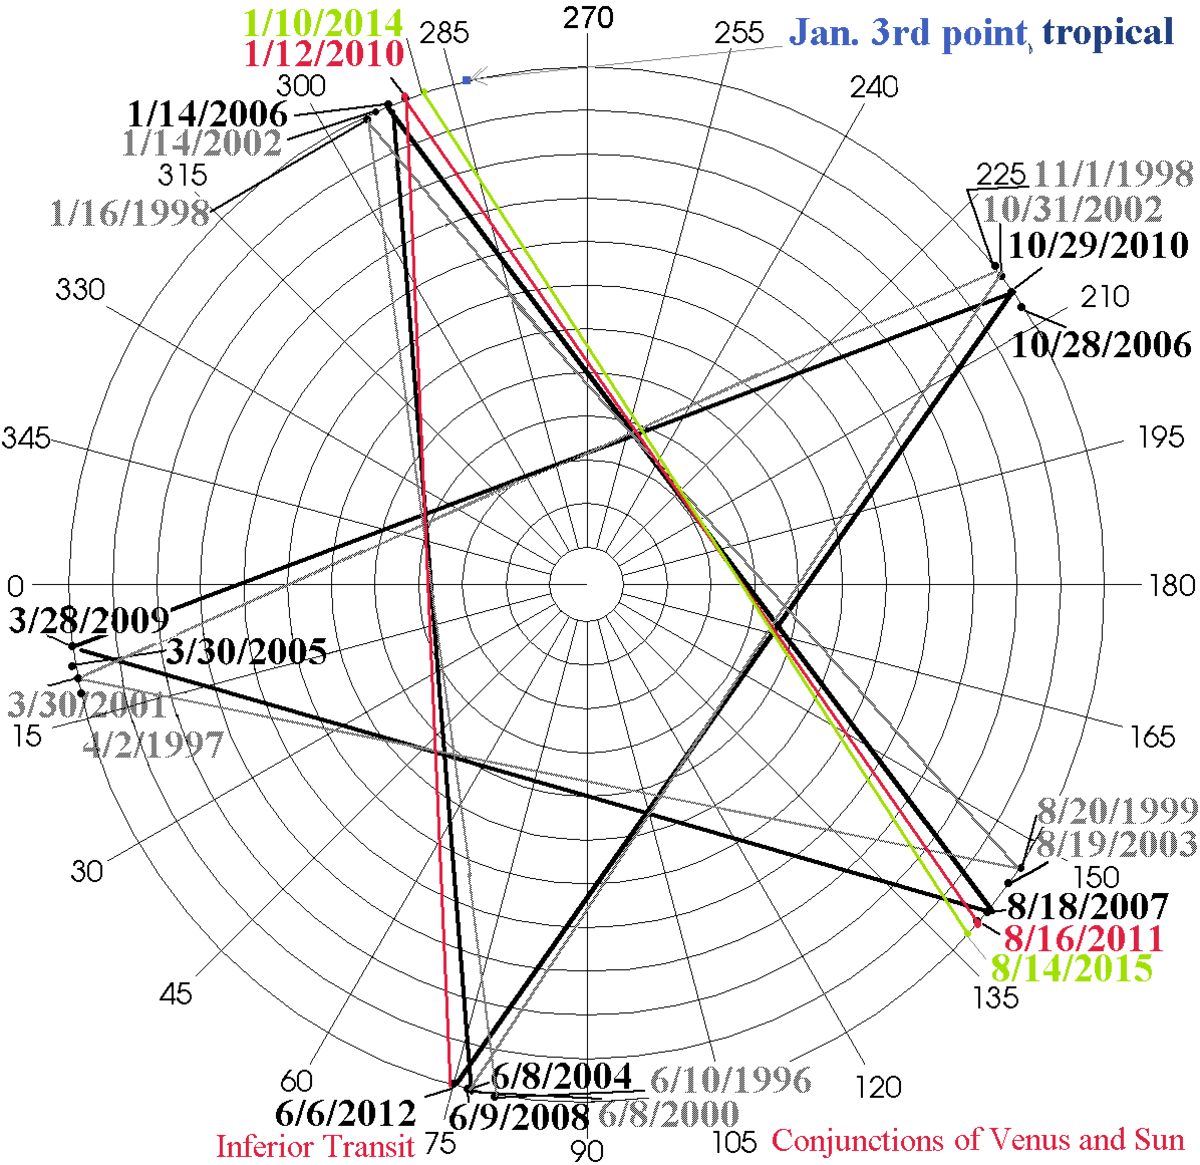 The cycles of Venus and Sun inferior conjunctions are mapped out for the current epoch; when and where they apply. Only the June 6th conjunction has Venus crossing the sun visibly.